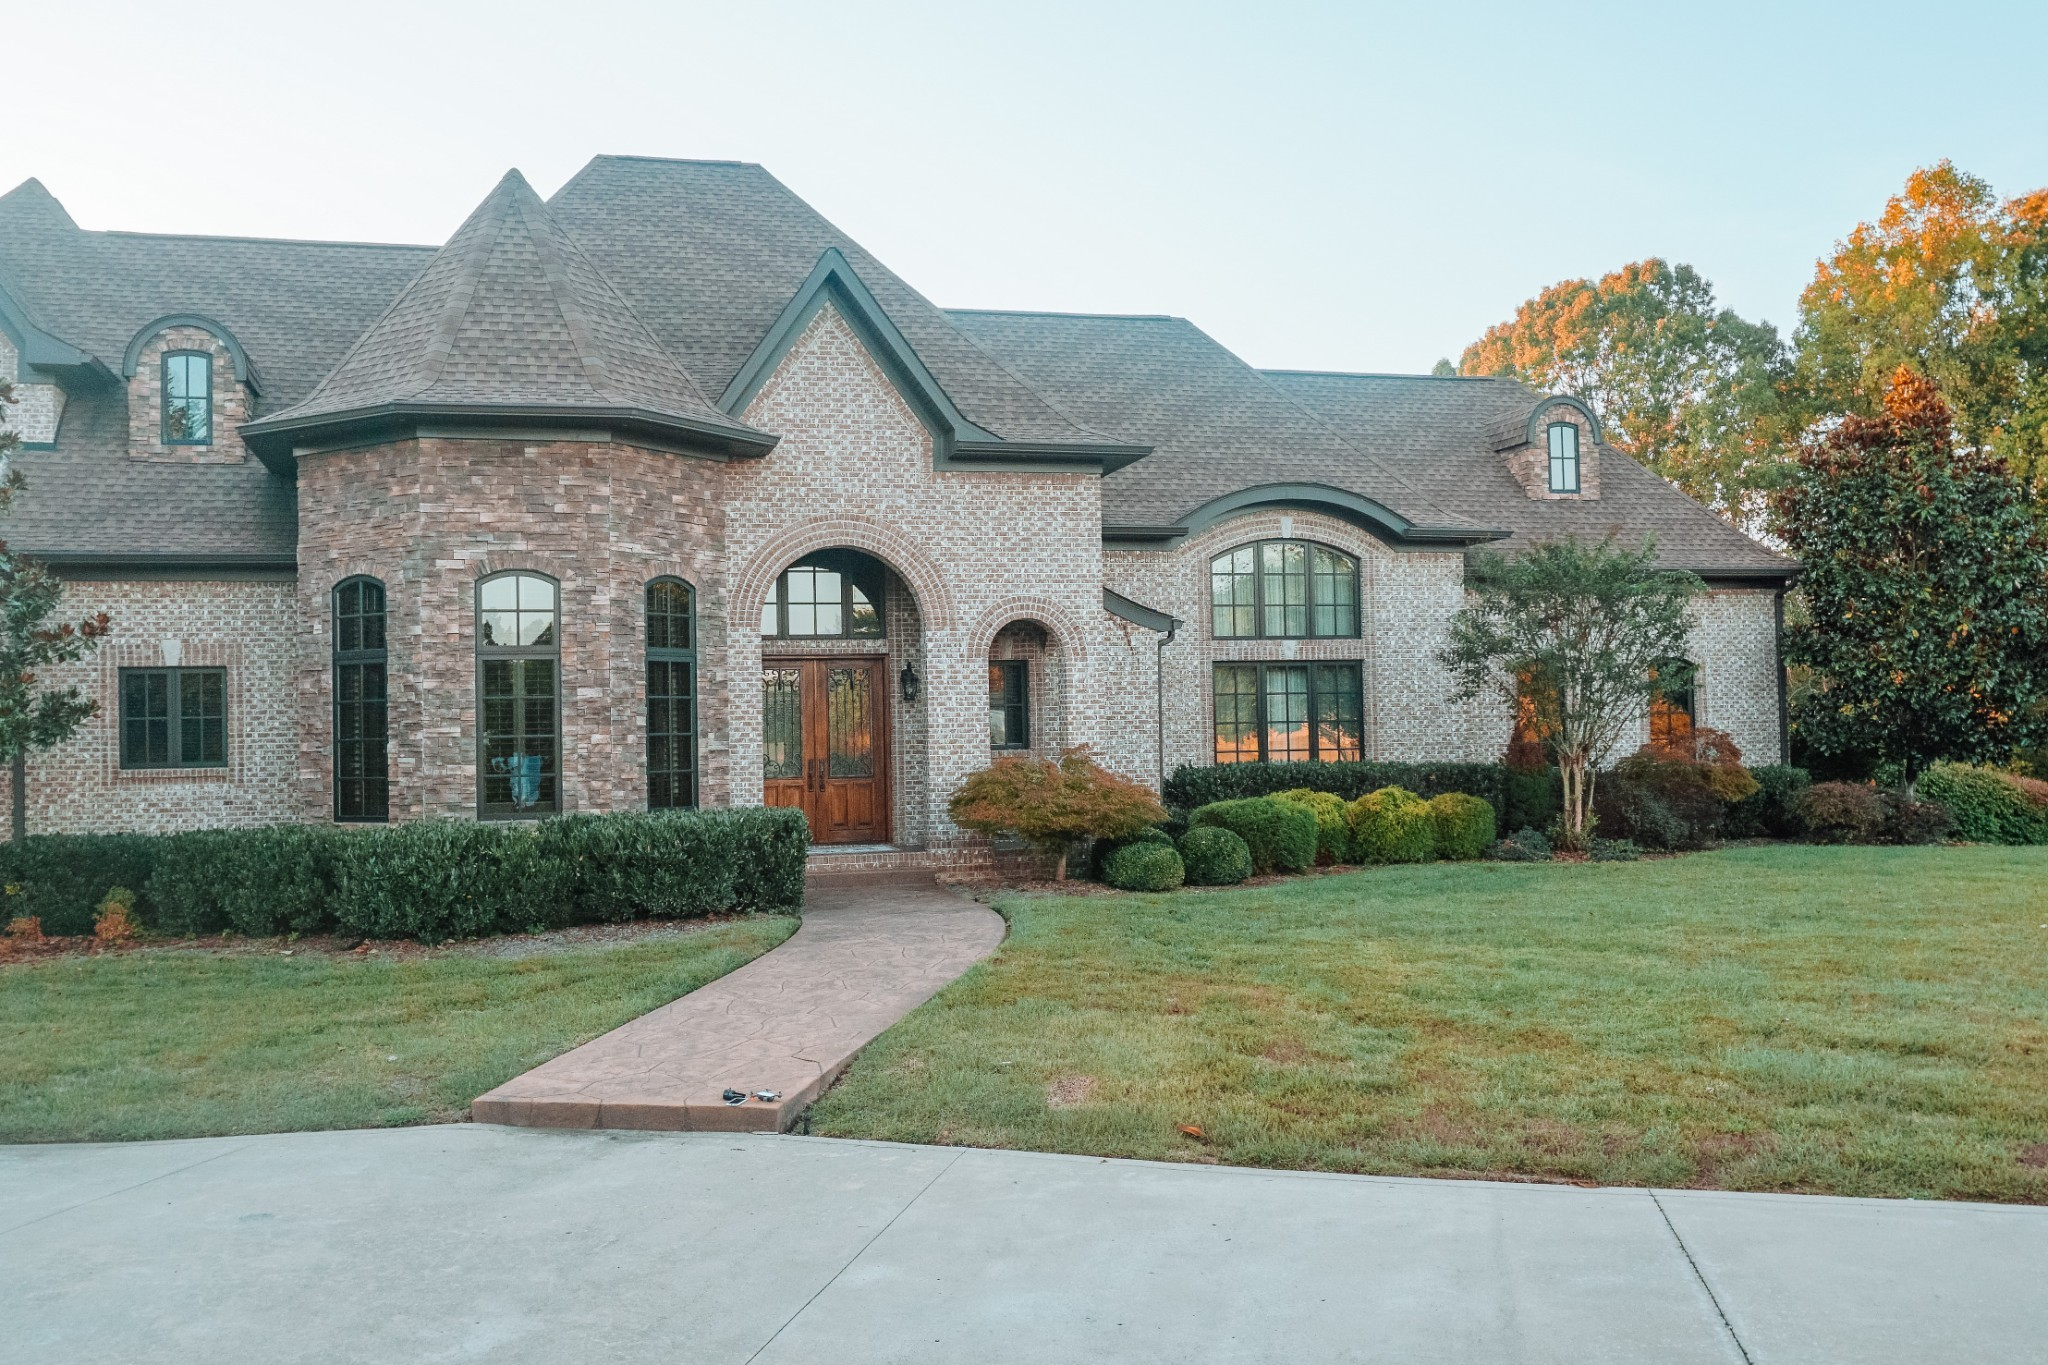 4776 Mickle Ln, Clarksville, TN 37043 - Clarksville, TN real estate listing